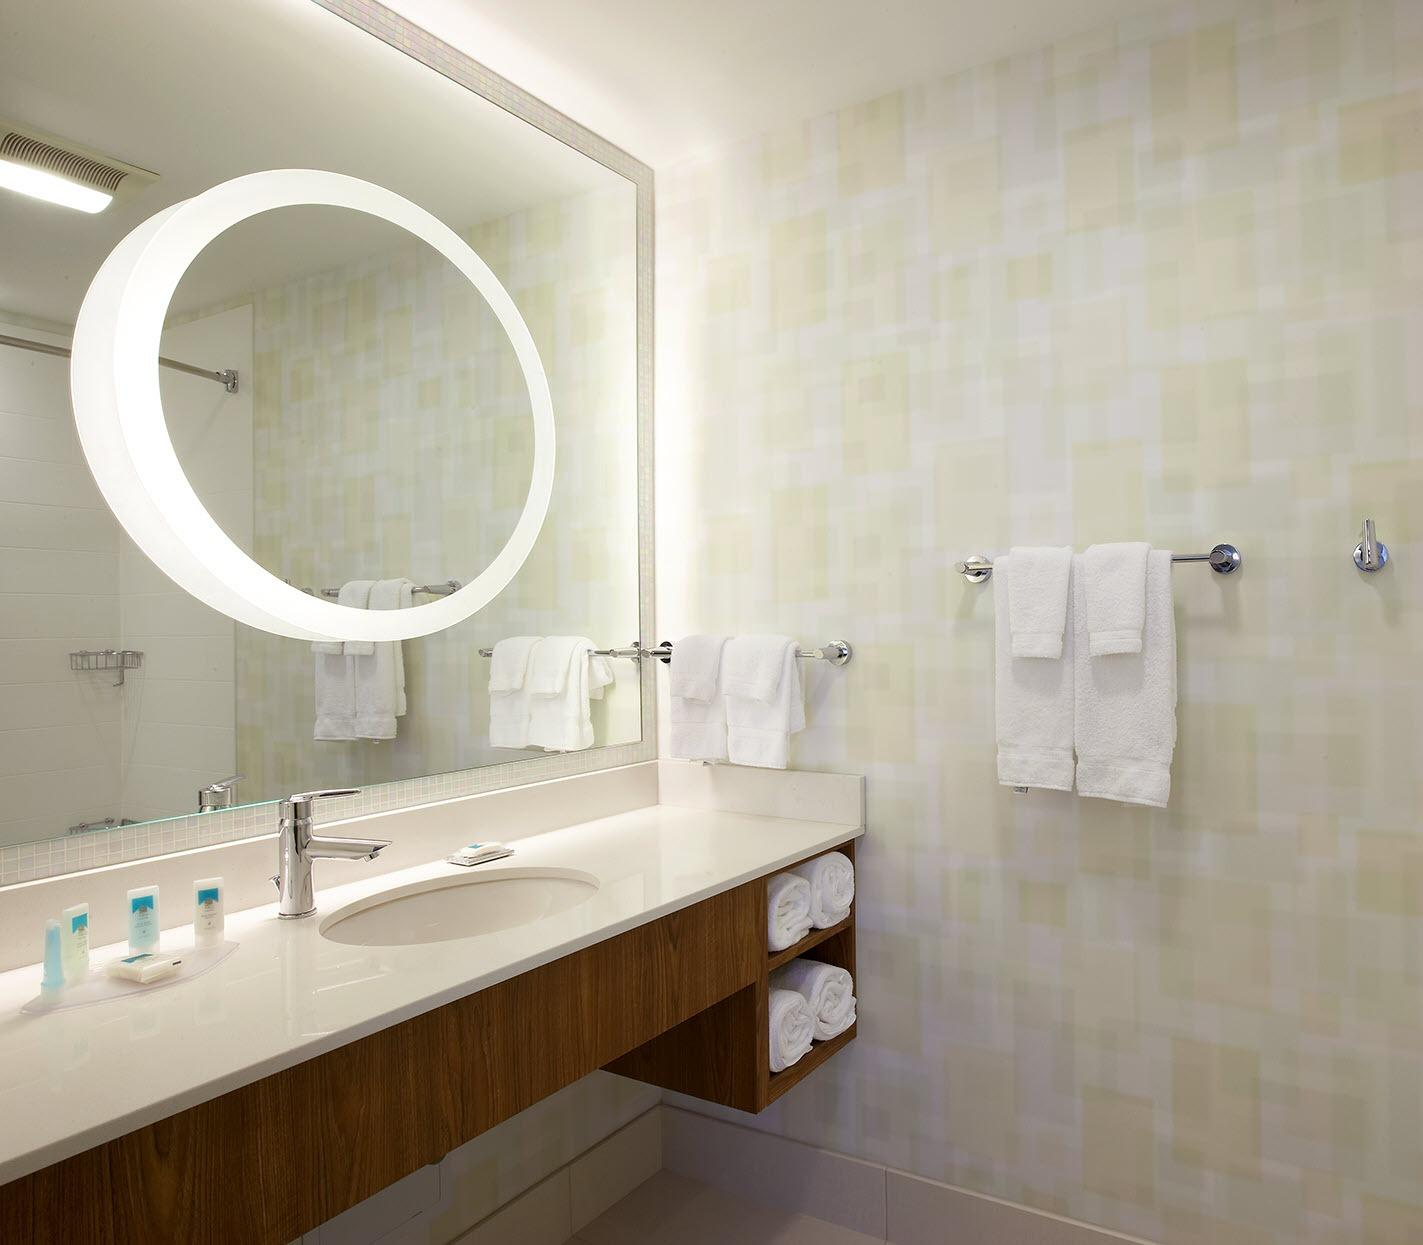 SpringHill Suites by Marriott Chicago Waukegan/Gurnee image 7